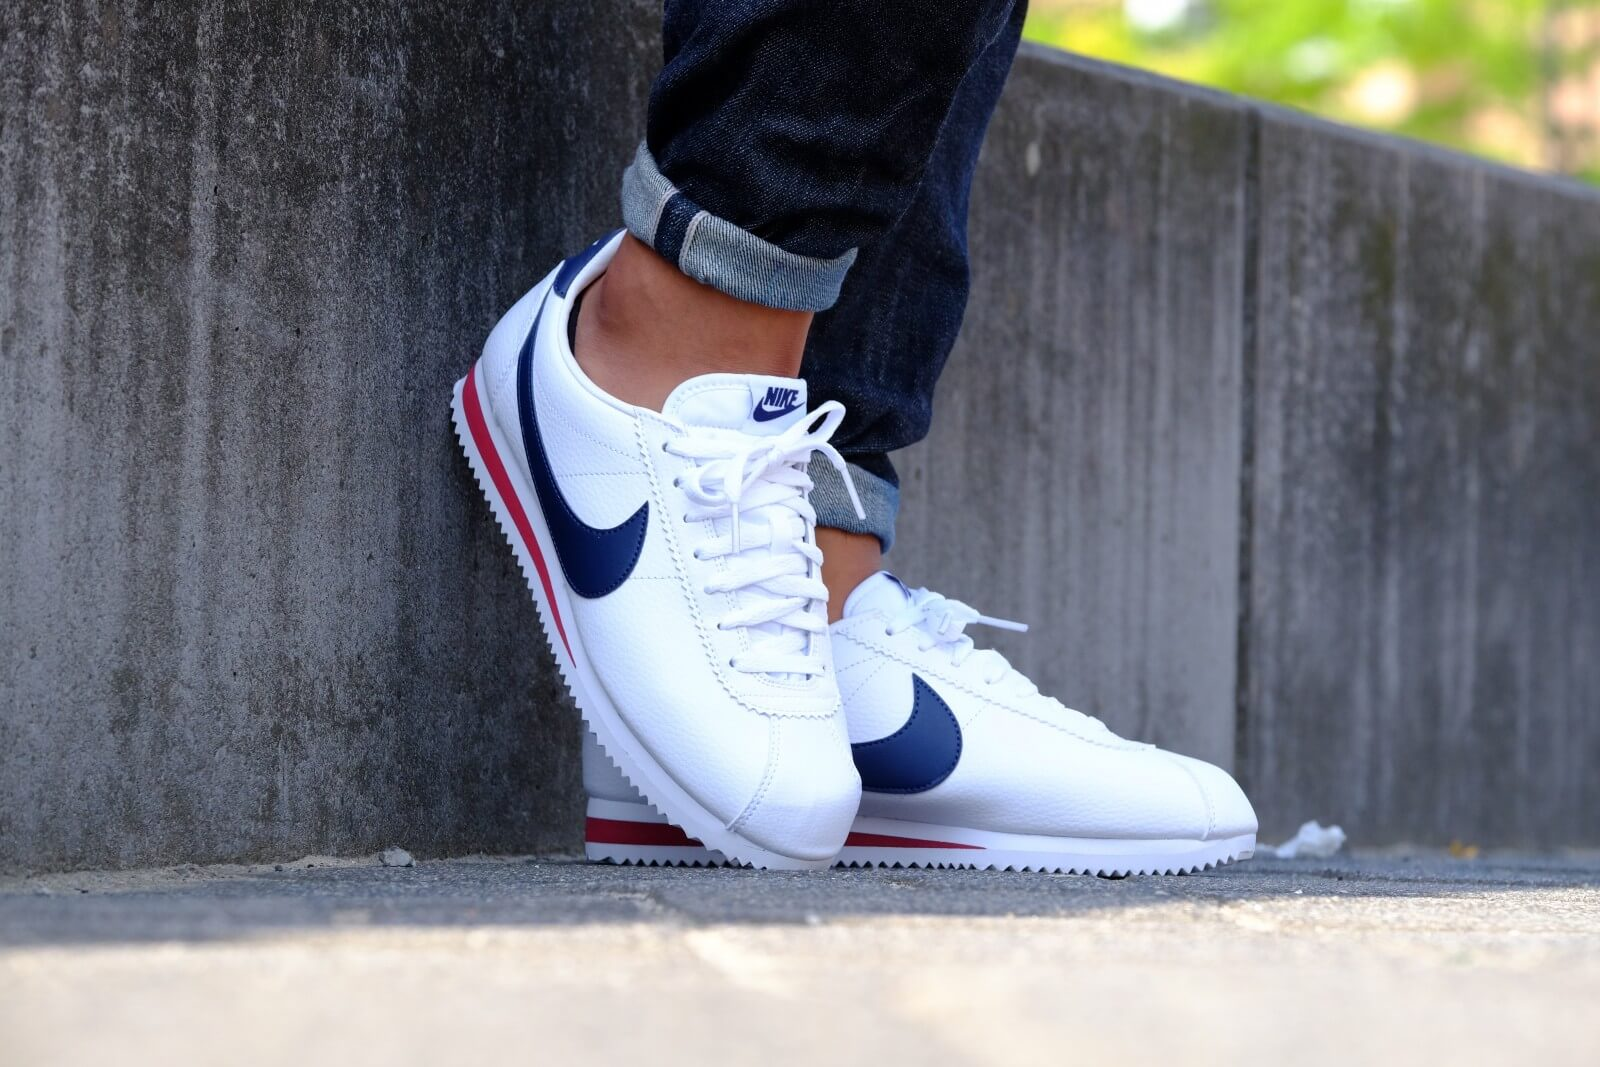 Nike Classic Cortez Leather White Midnight Navy Gym Red